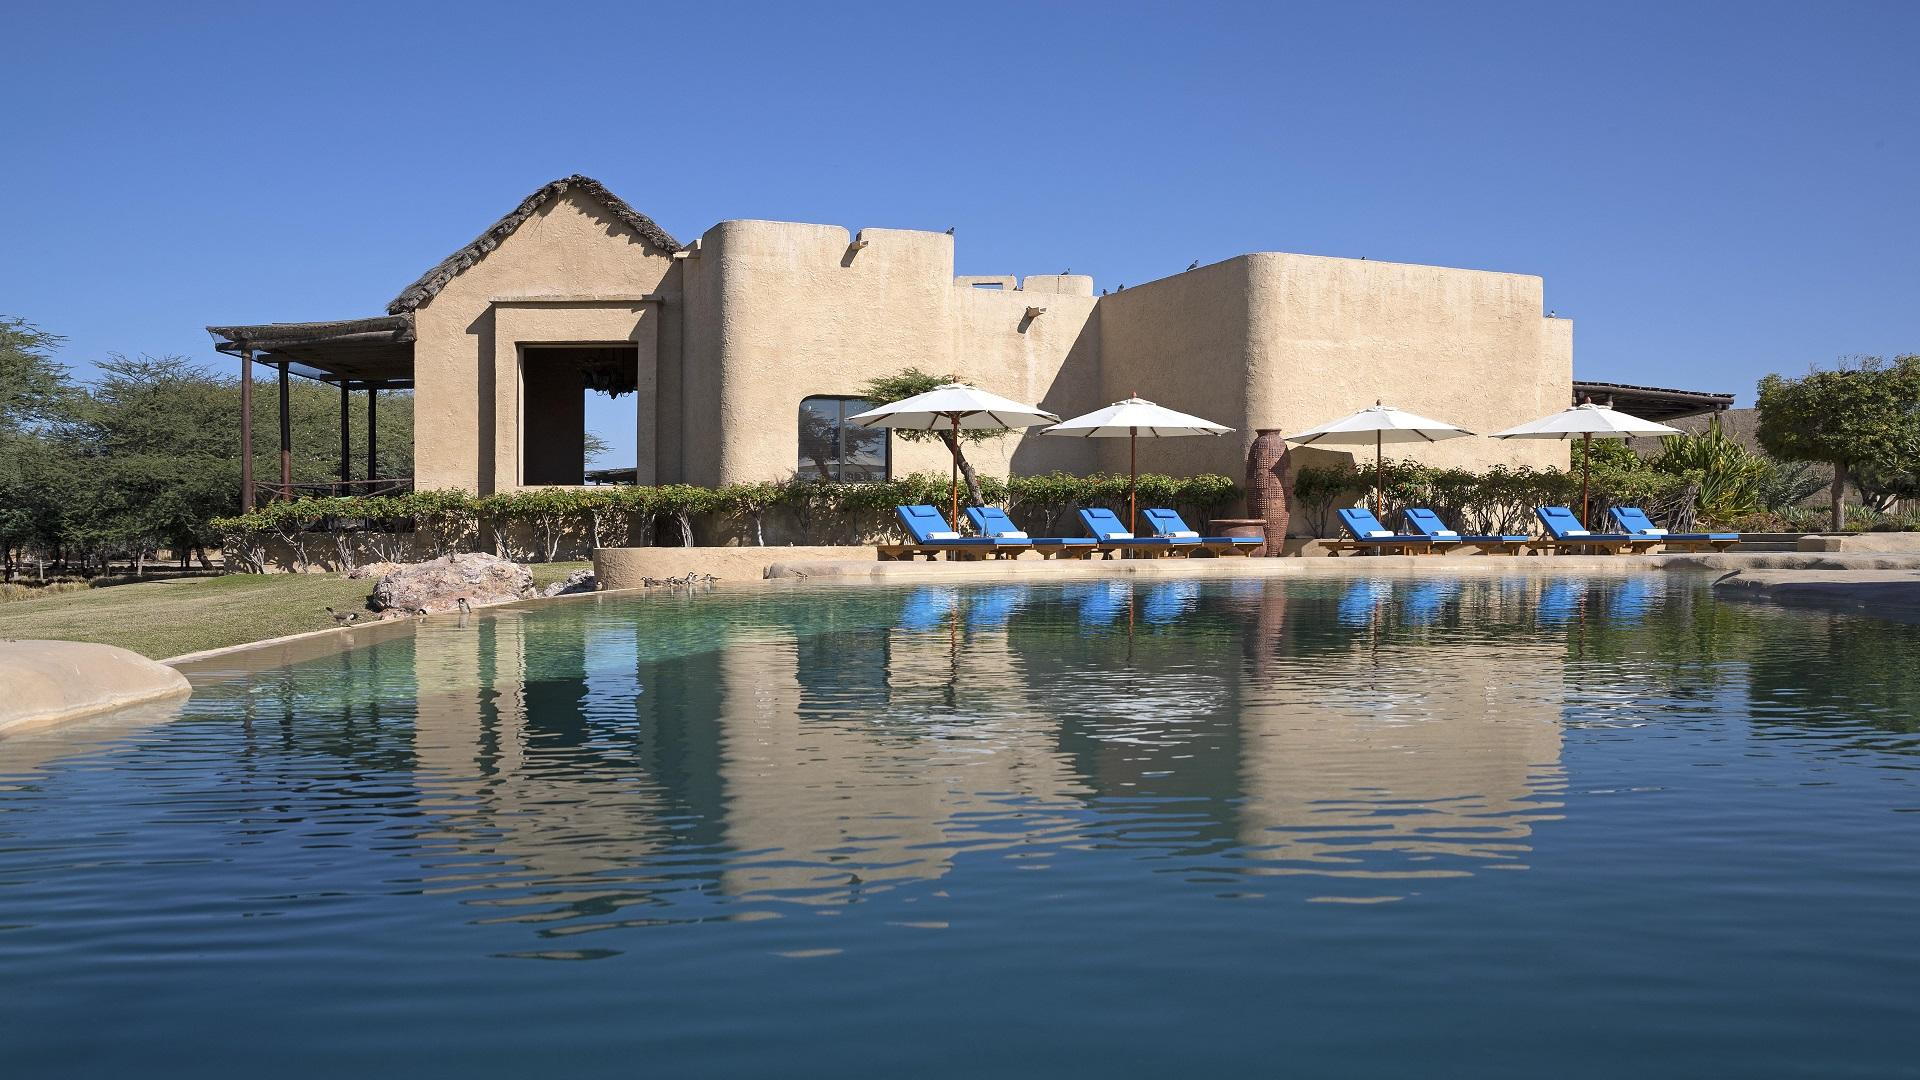 Anantara_Sir_Bani_Yas_Island_Al_Sahel_Villa_Resort_Pool_View_Main_Pool